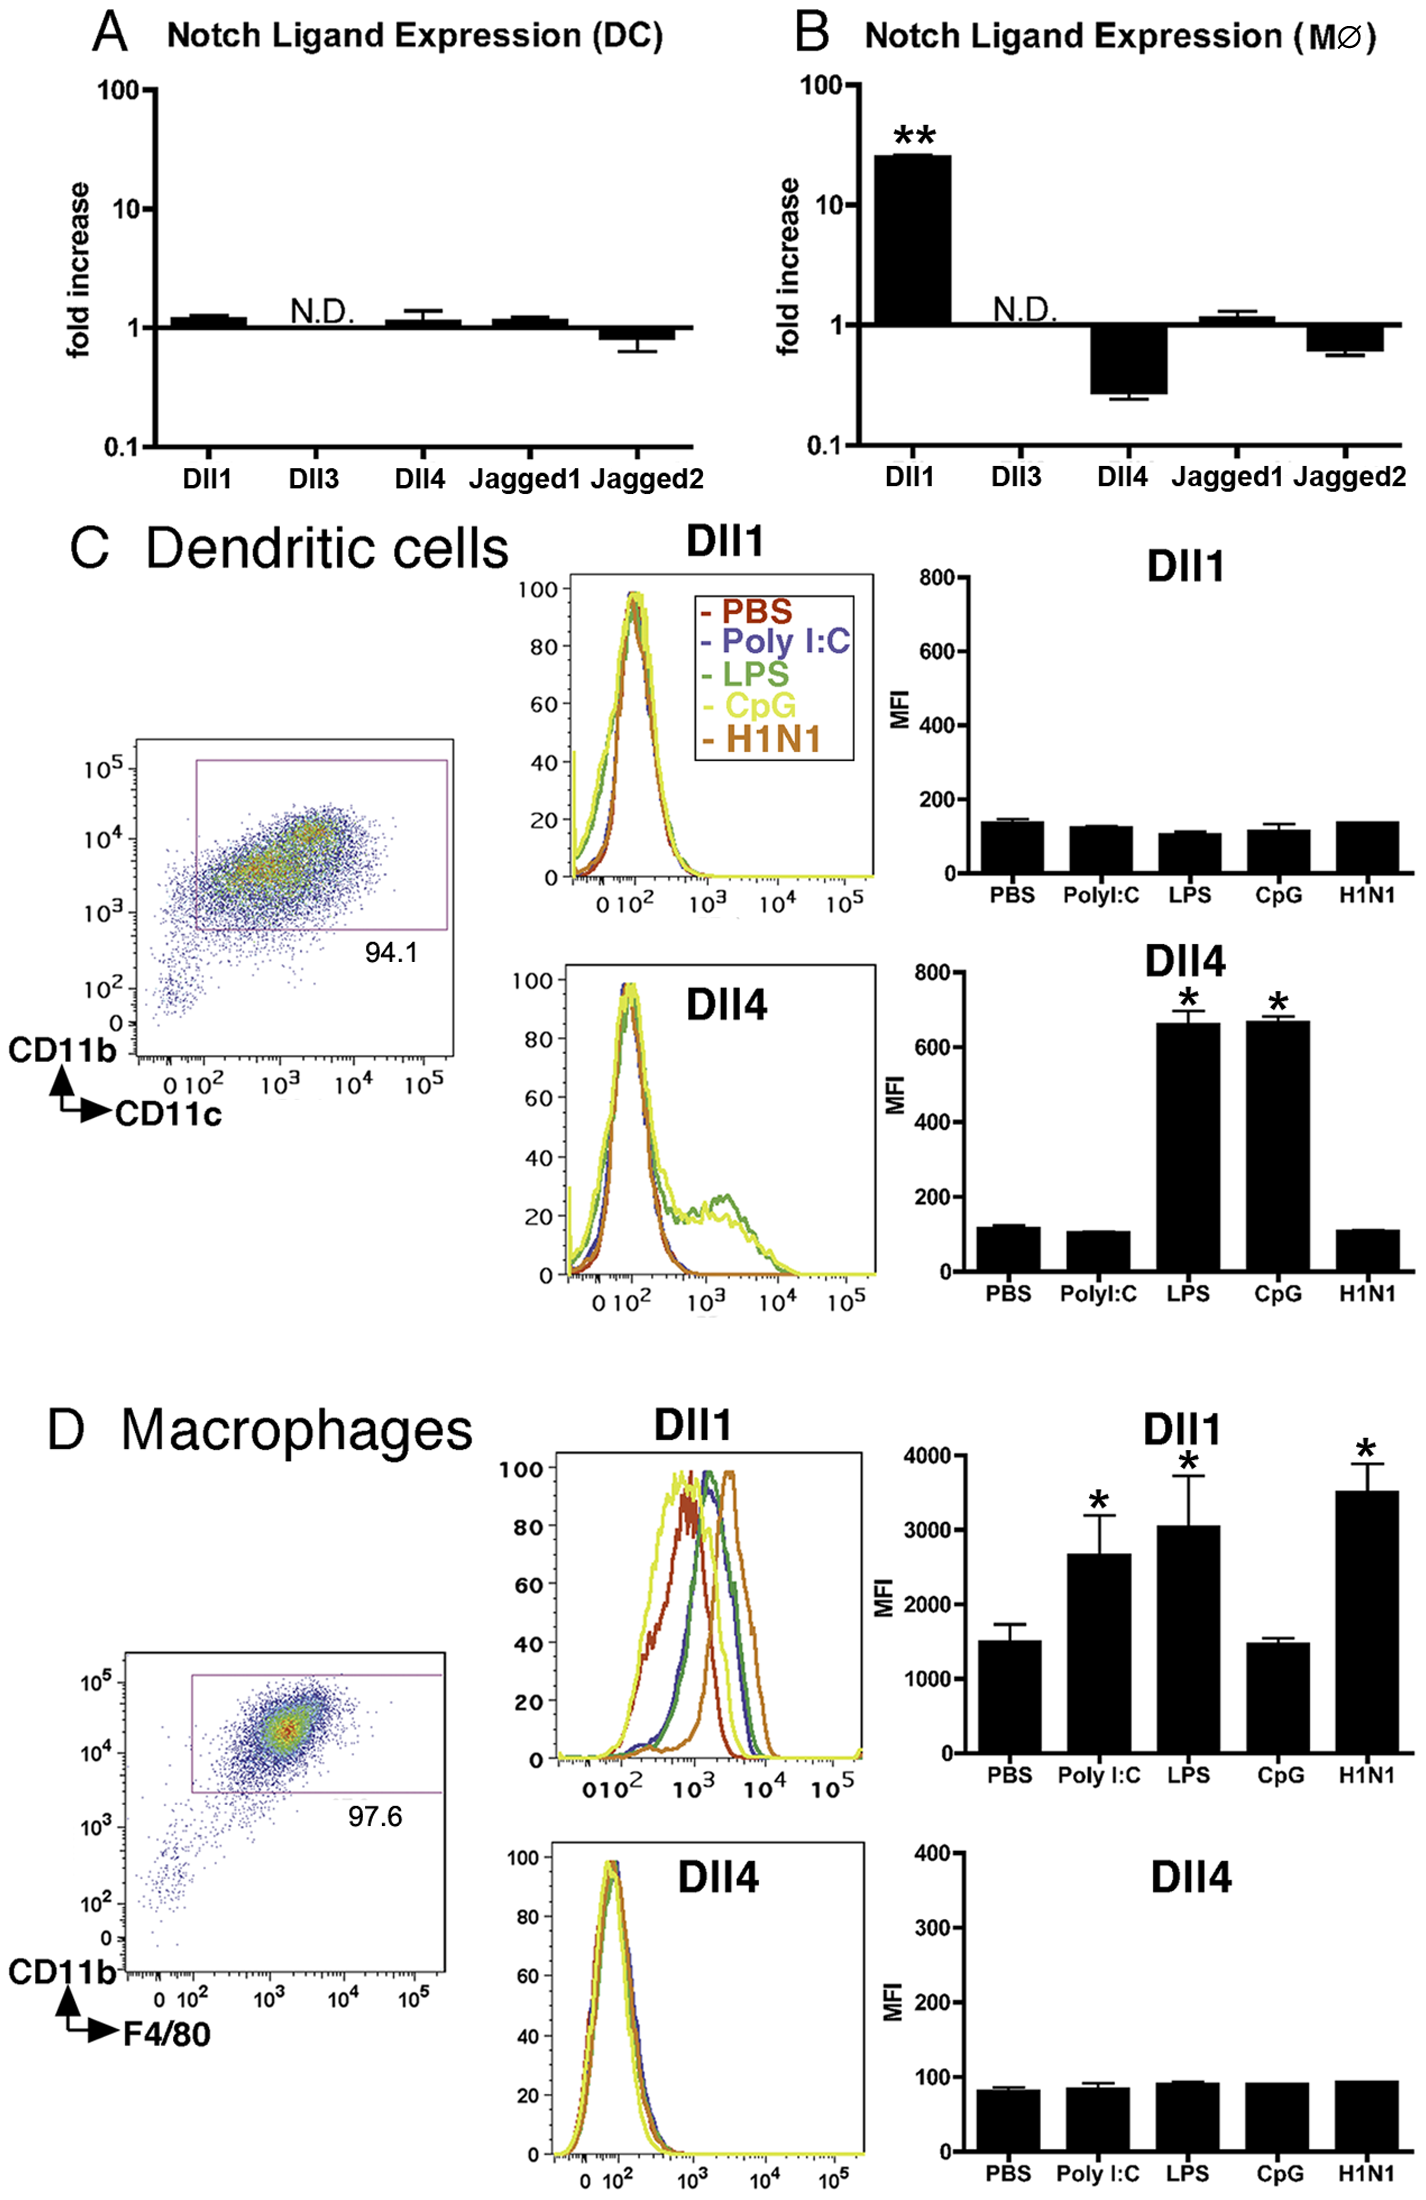 BMDMs, but not BMDCs, exhibit increased expression of Dll1.